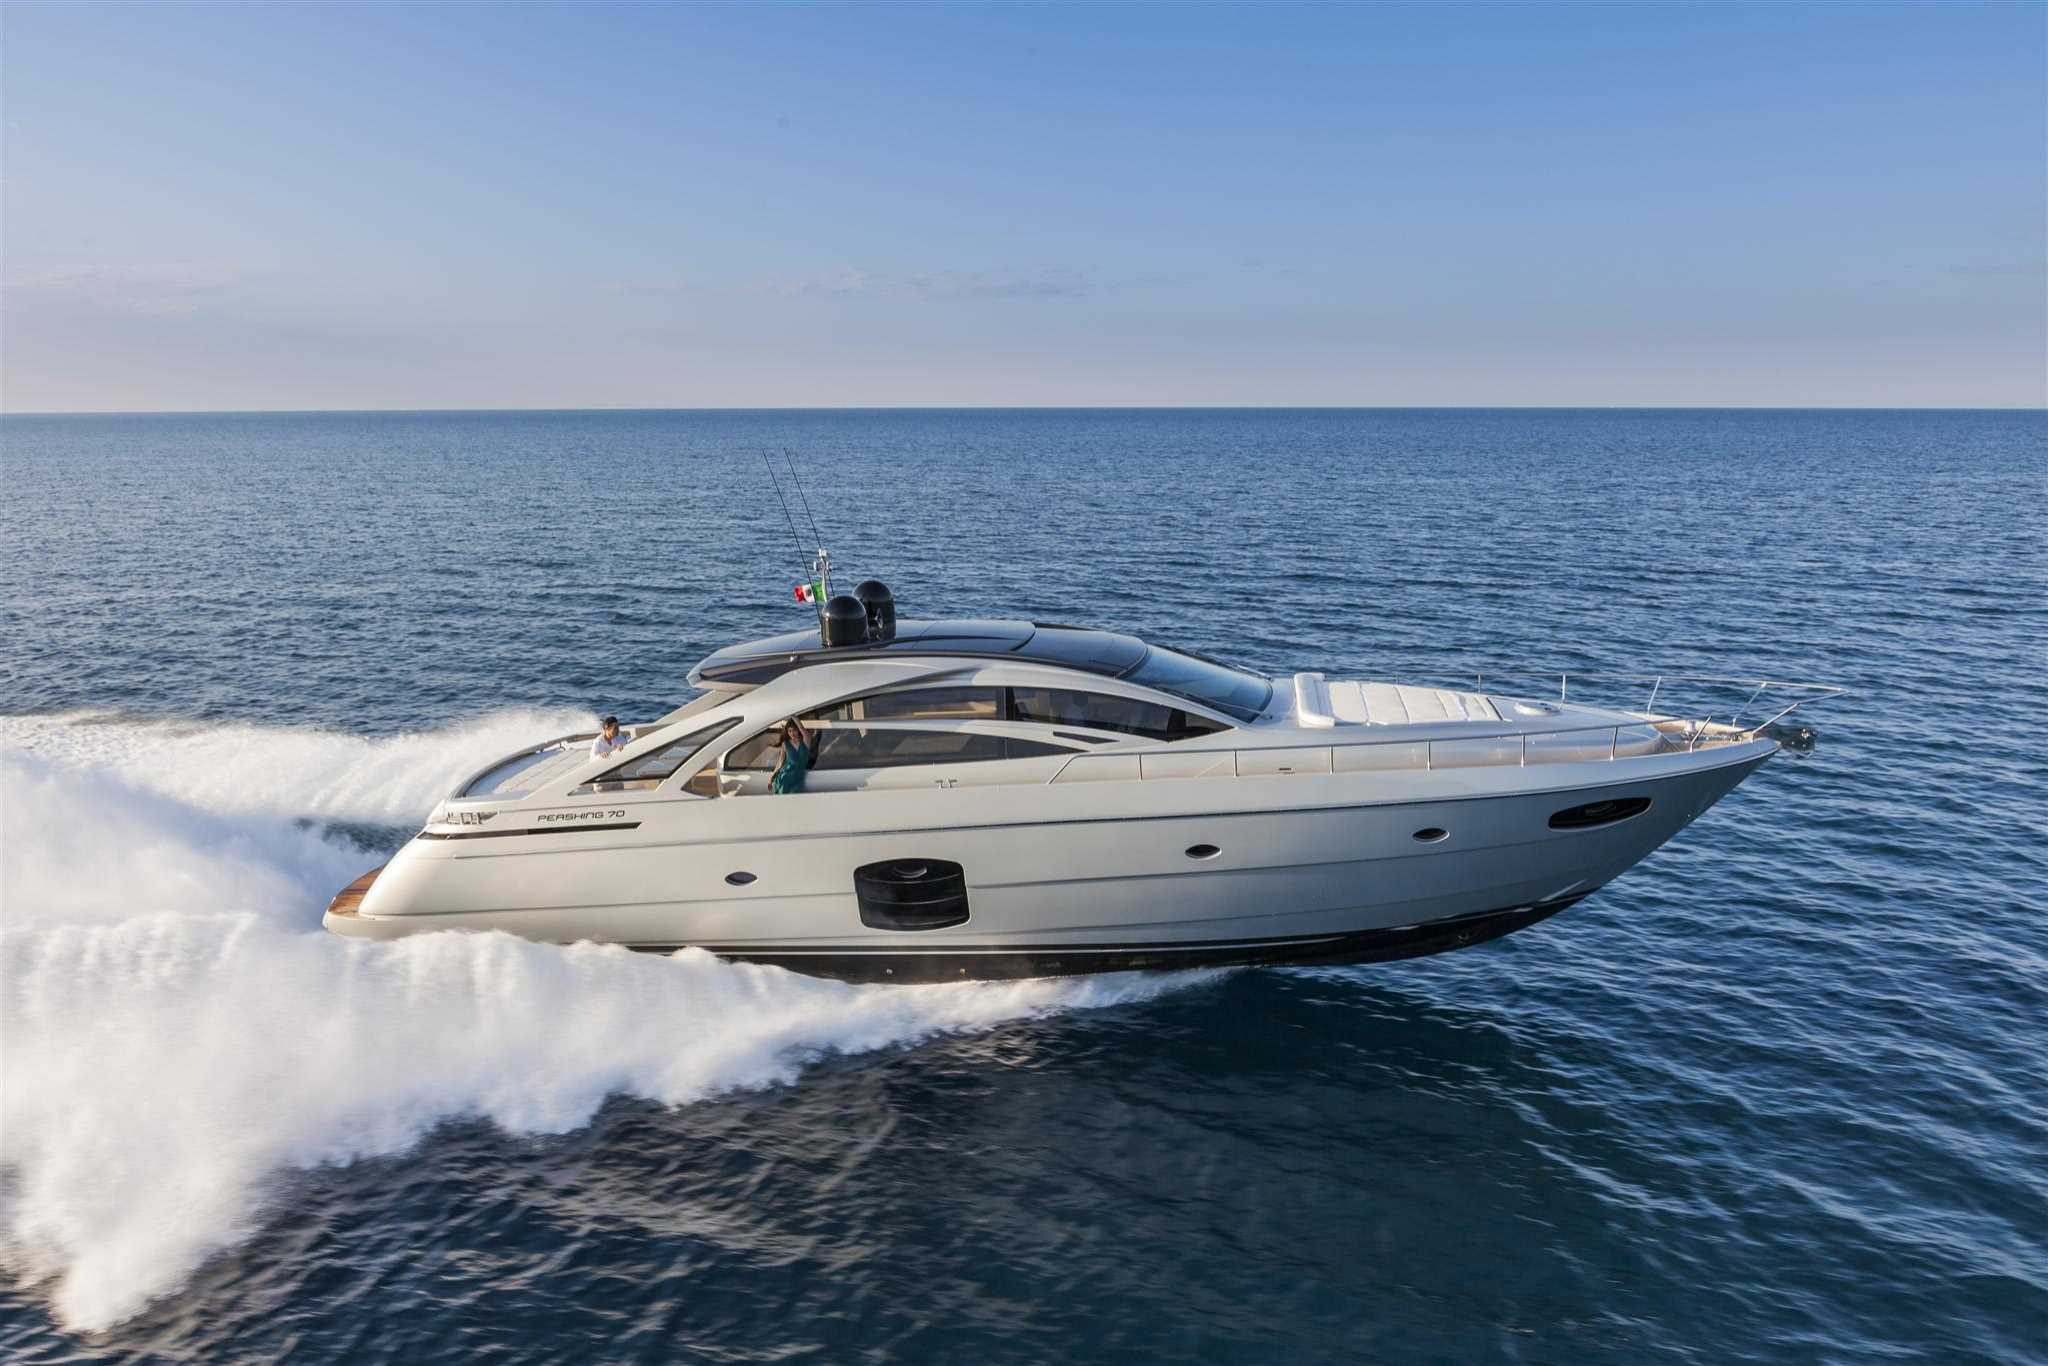 2018 Pershing 70 Luxury Yacht for sale